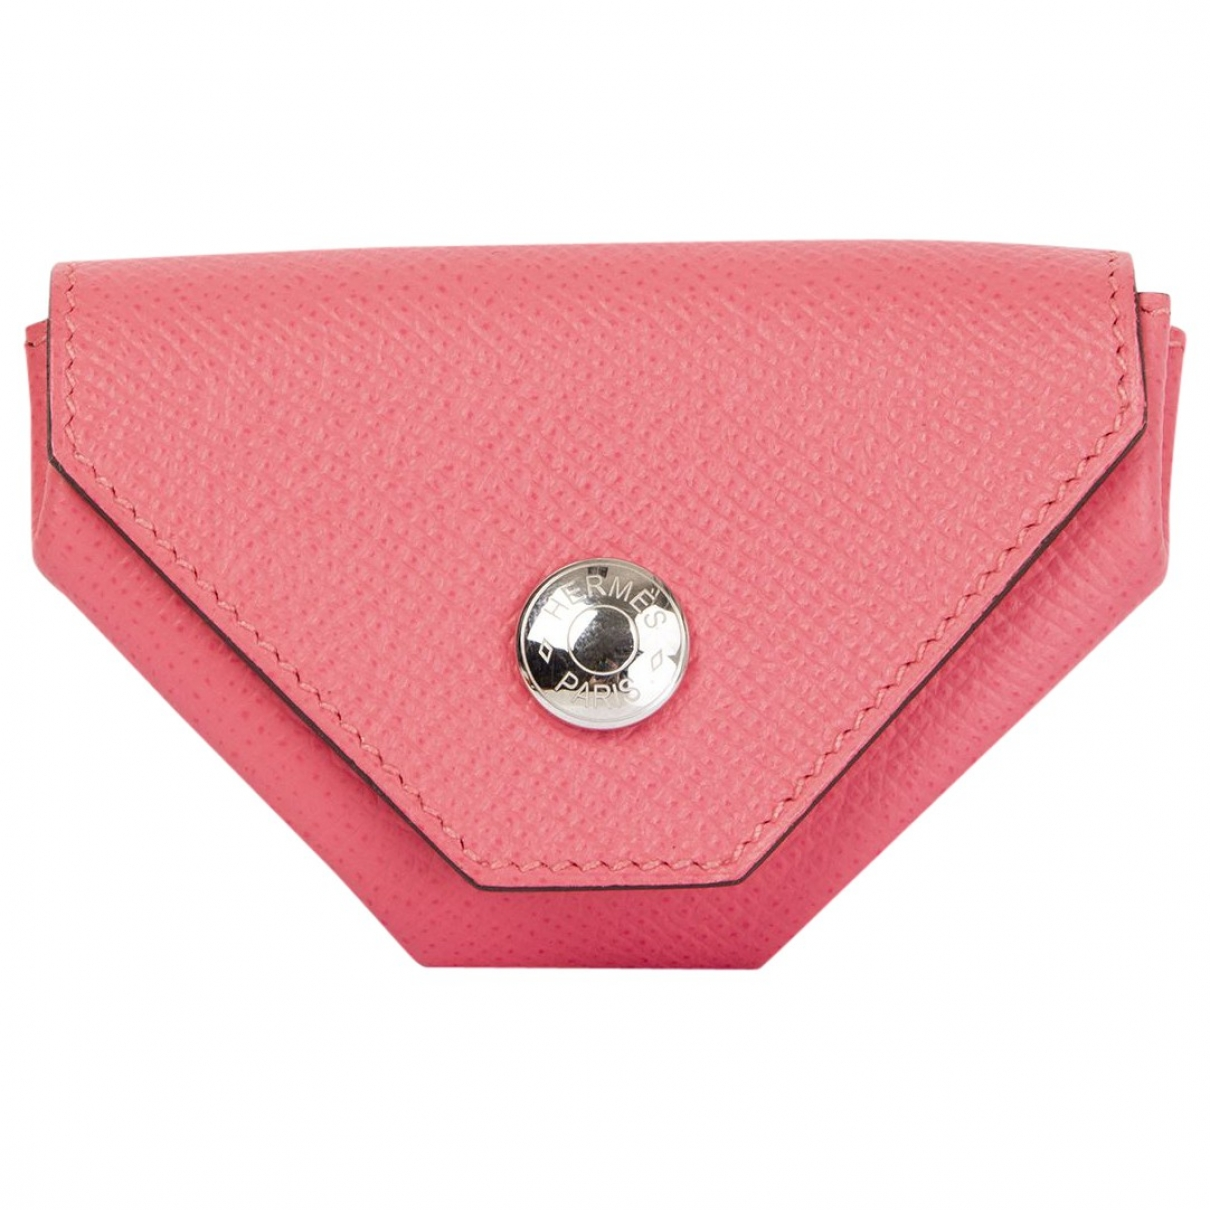 Hermès 24 Pink Leather Purses, wallet & cases for Women \N